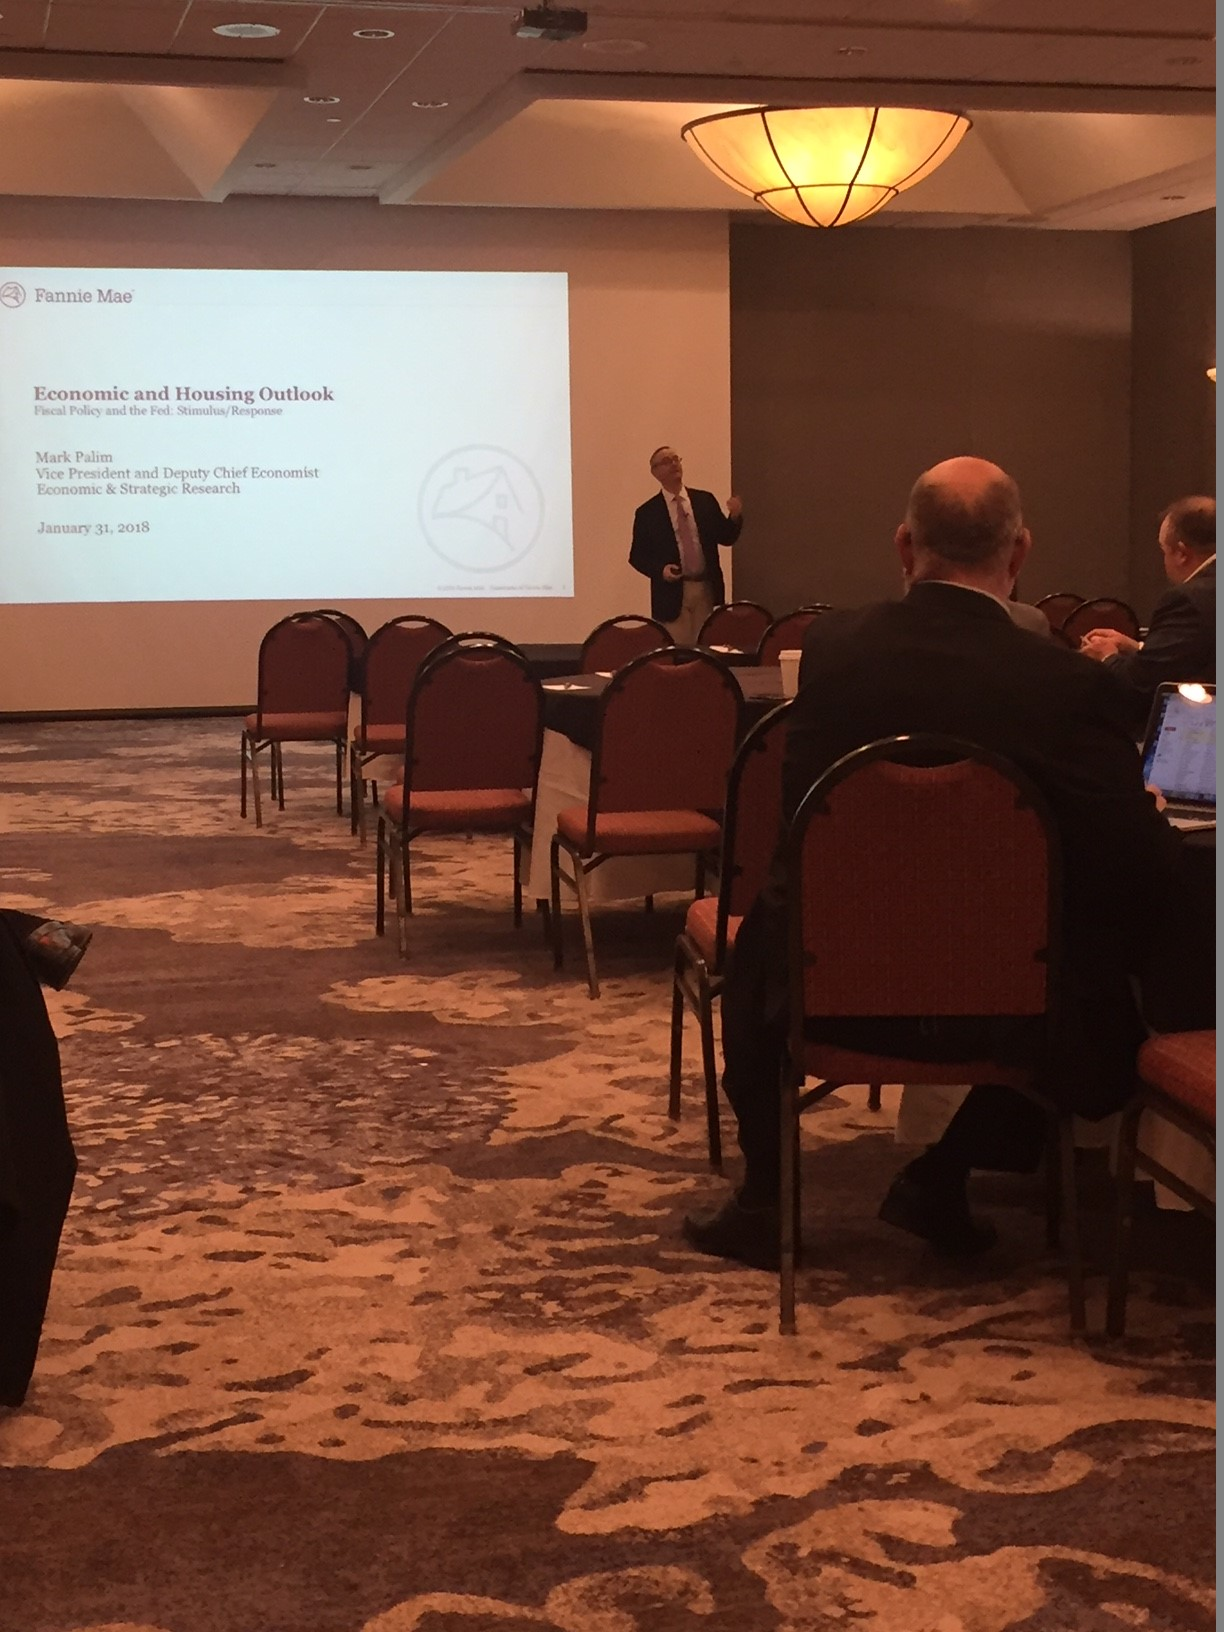 Image of a session about the housing market at the CRN event